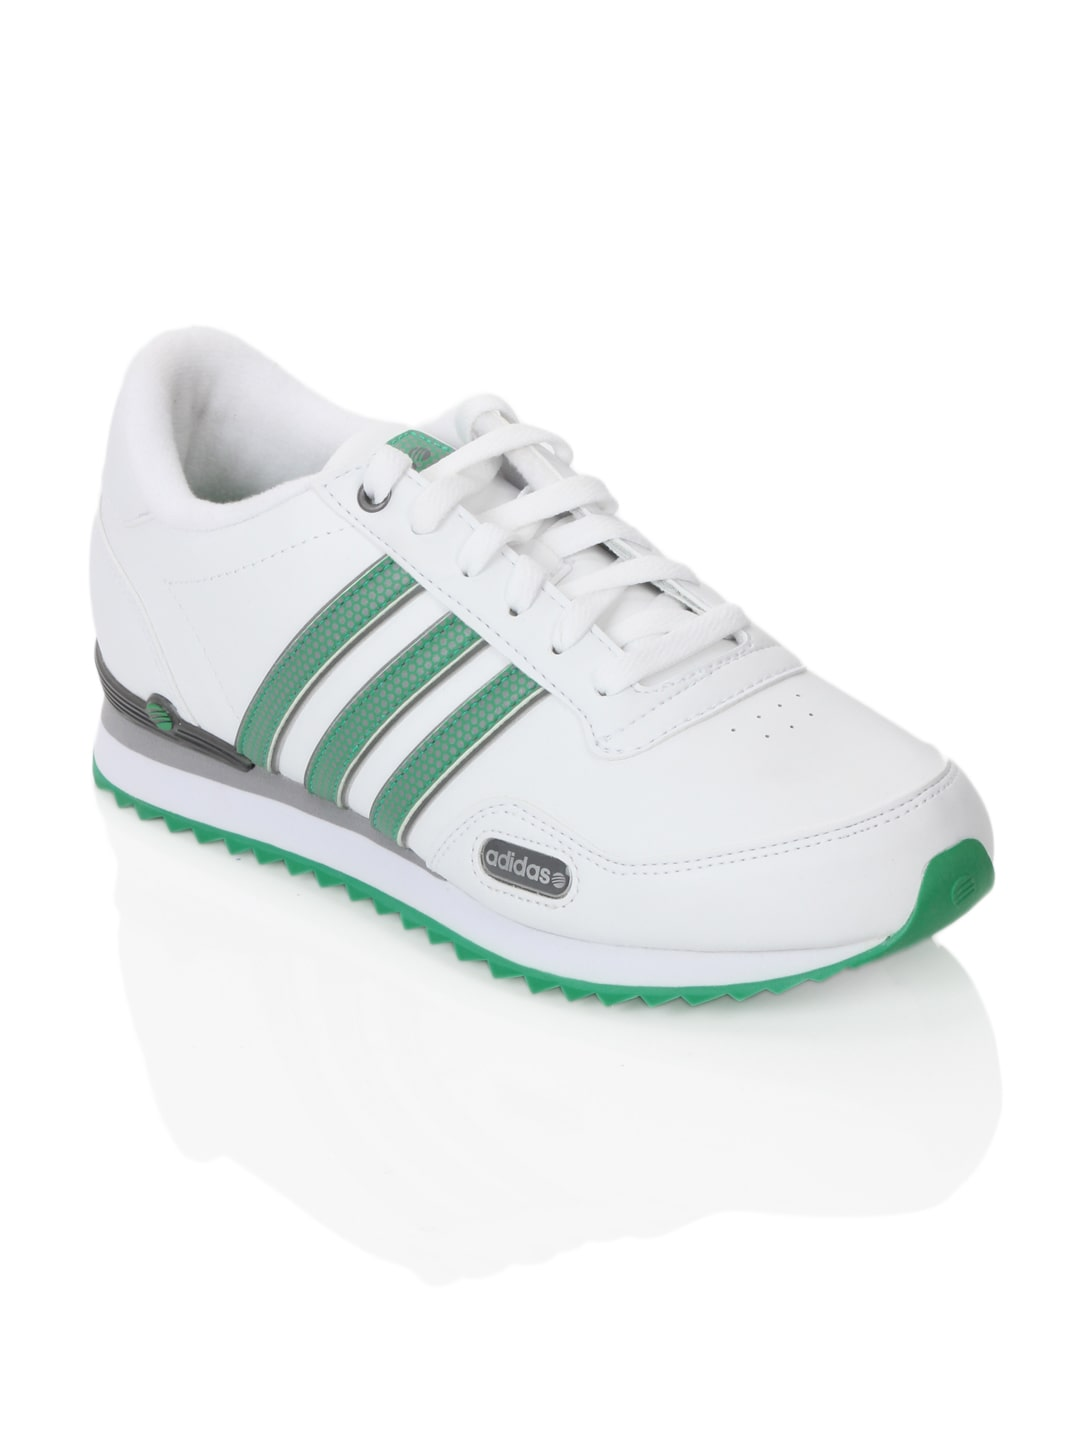 adidas neo jogger mens trainers